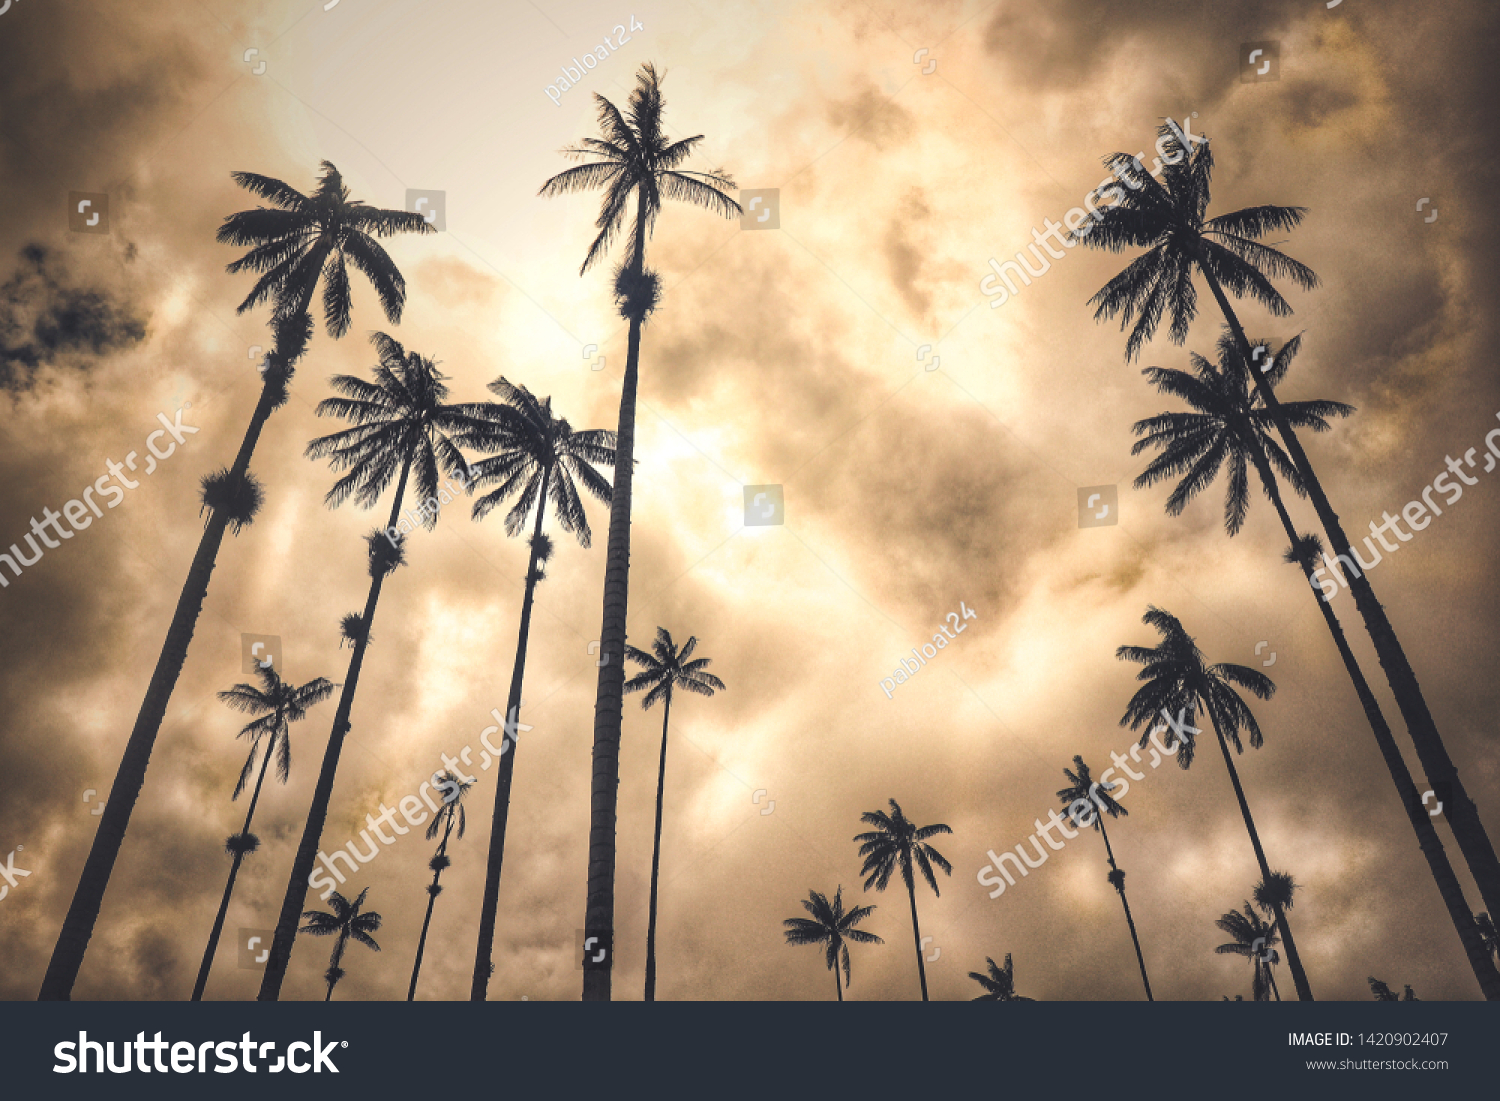 Palm Trees Wallpaper Los Angeles California Backgrounds Textures